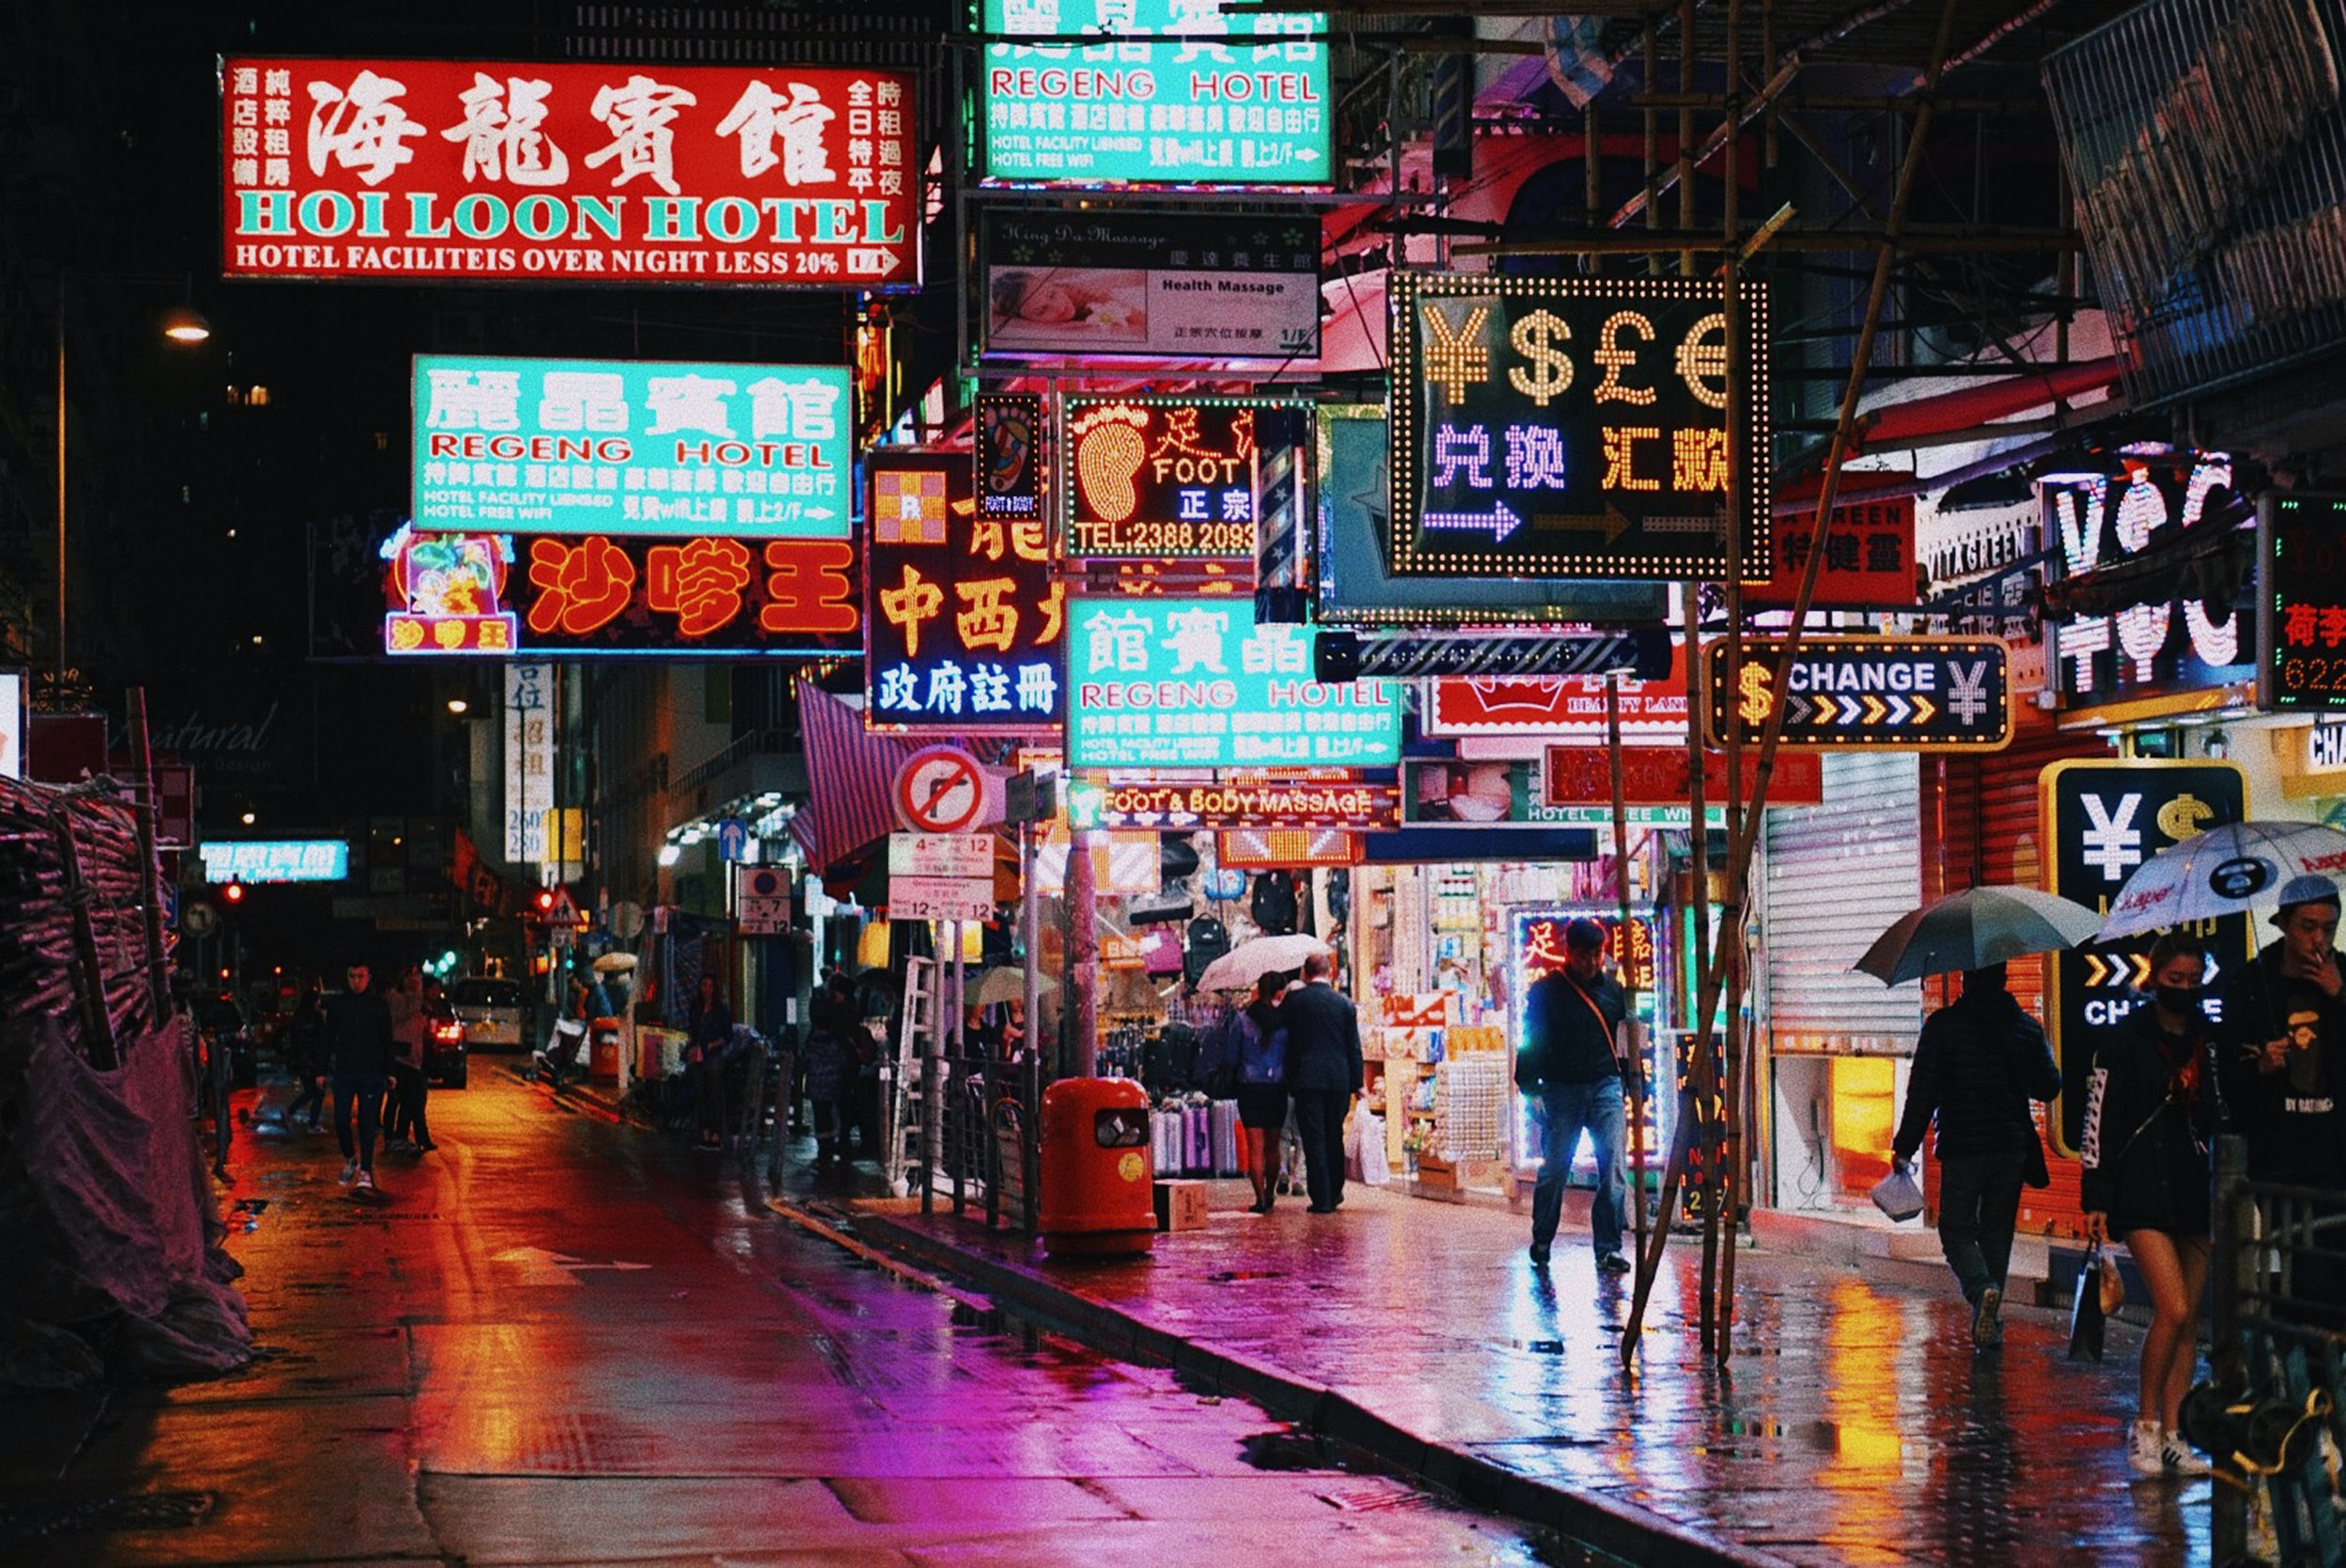 Night time scene of a city street with several neon lights and signs over people walking around with umbrellas in a Hong Kong urban region